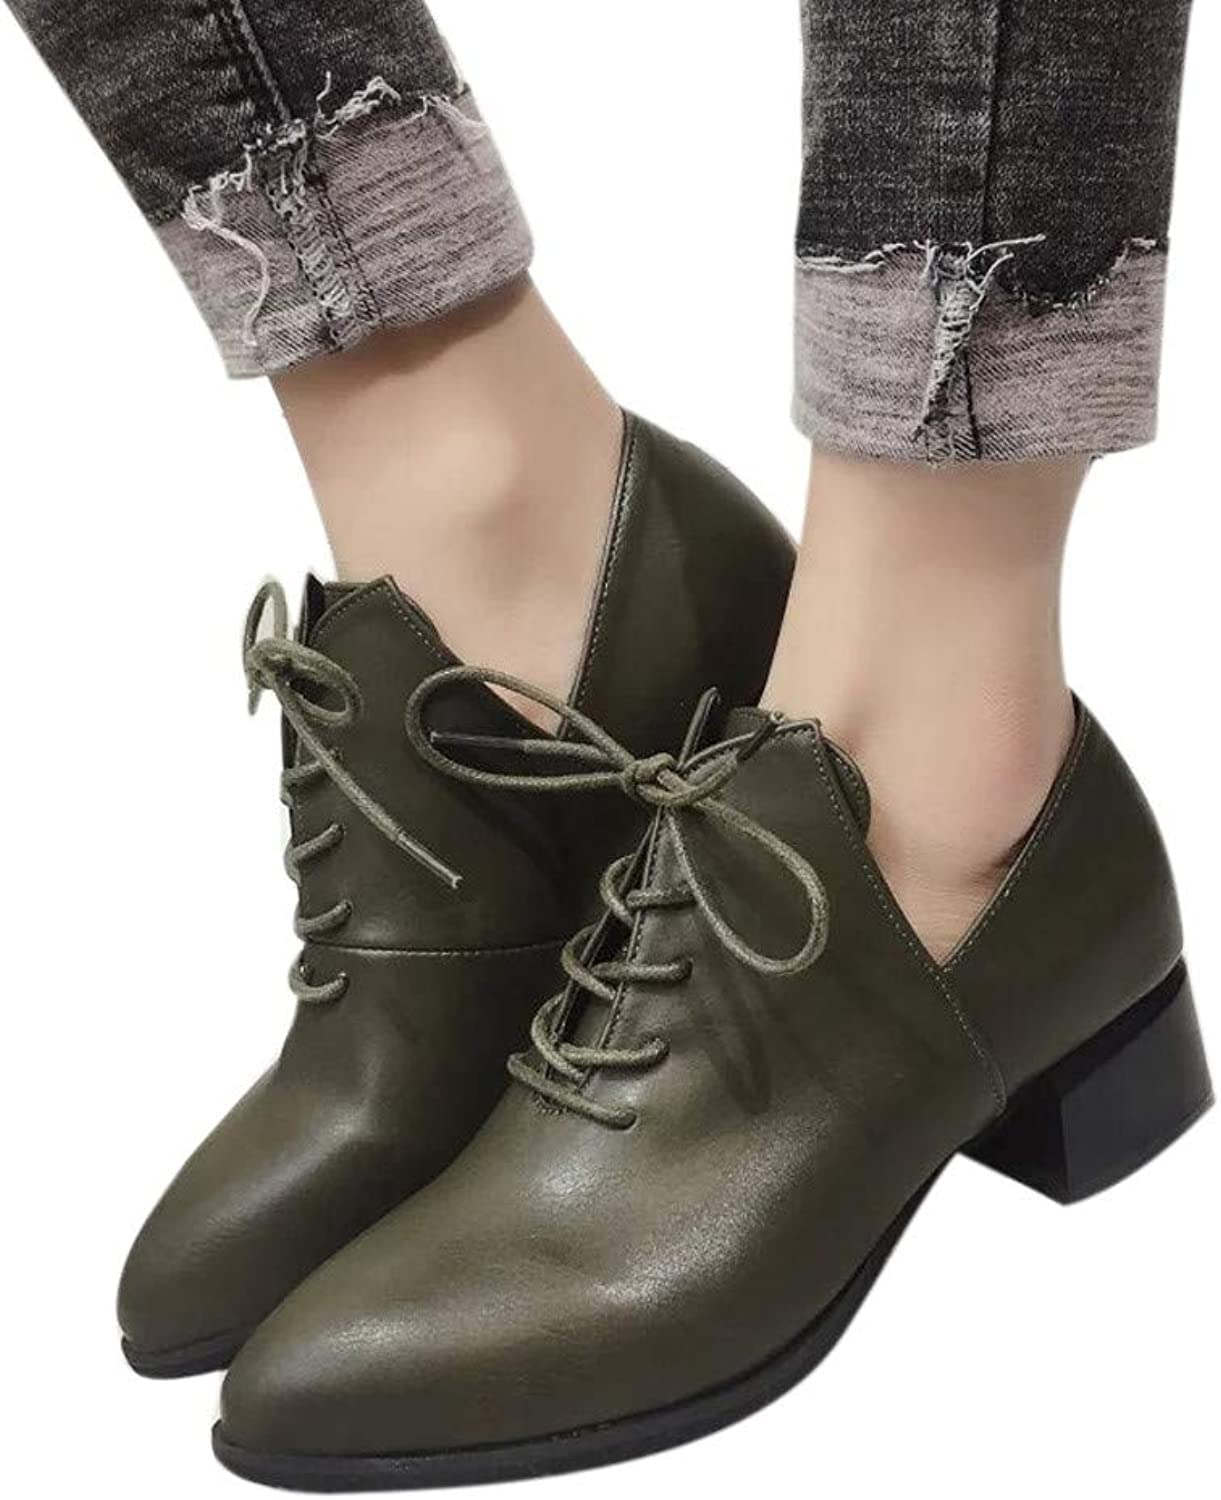 Ankle Boots Women British Thick Heel Pumps Boots Lace-Up shoes High Heels Boots